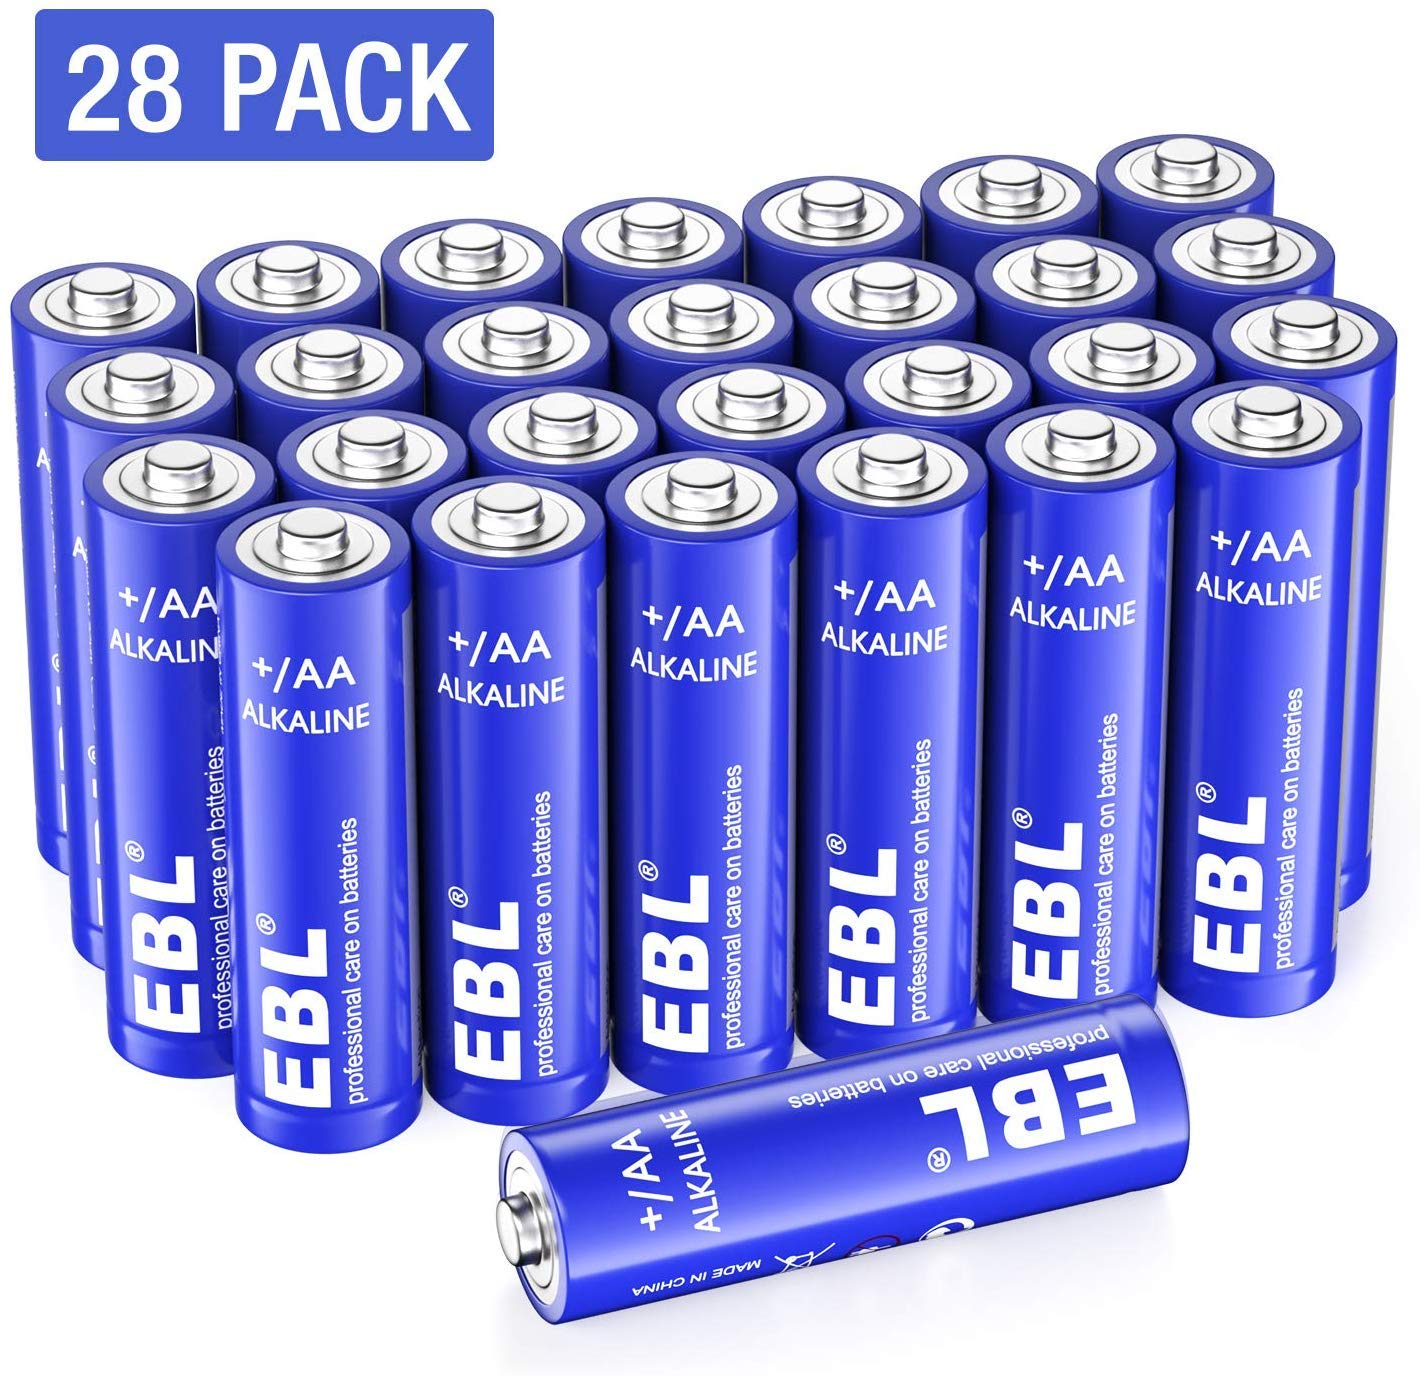 Good value batteries.